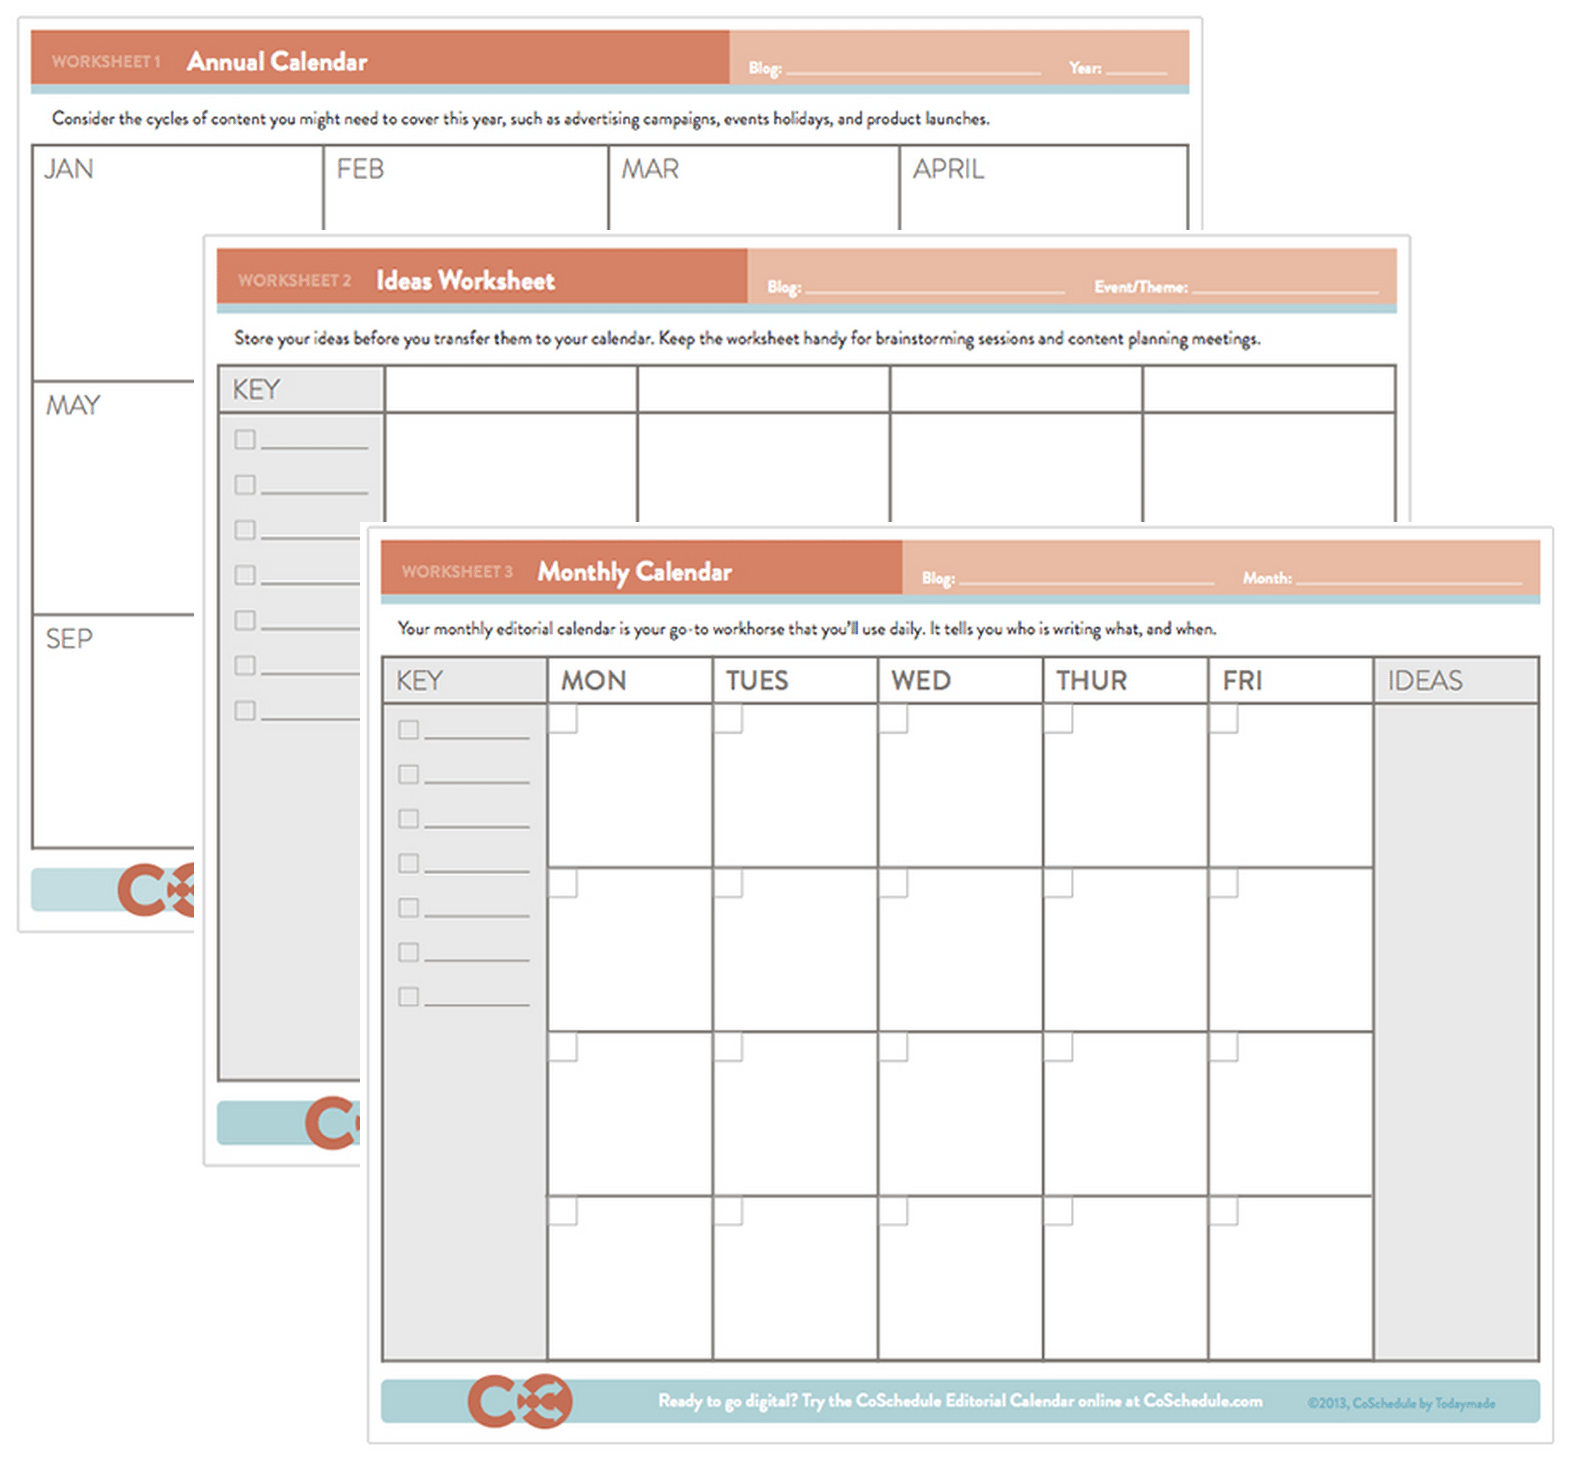 The Complete Guide To Choosing A Content Calendar inside Time And Action Calendar Template